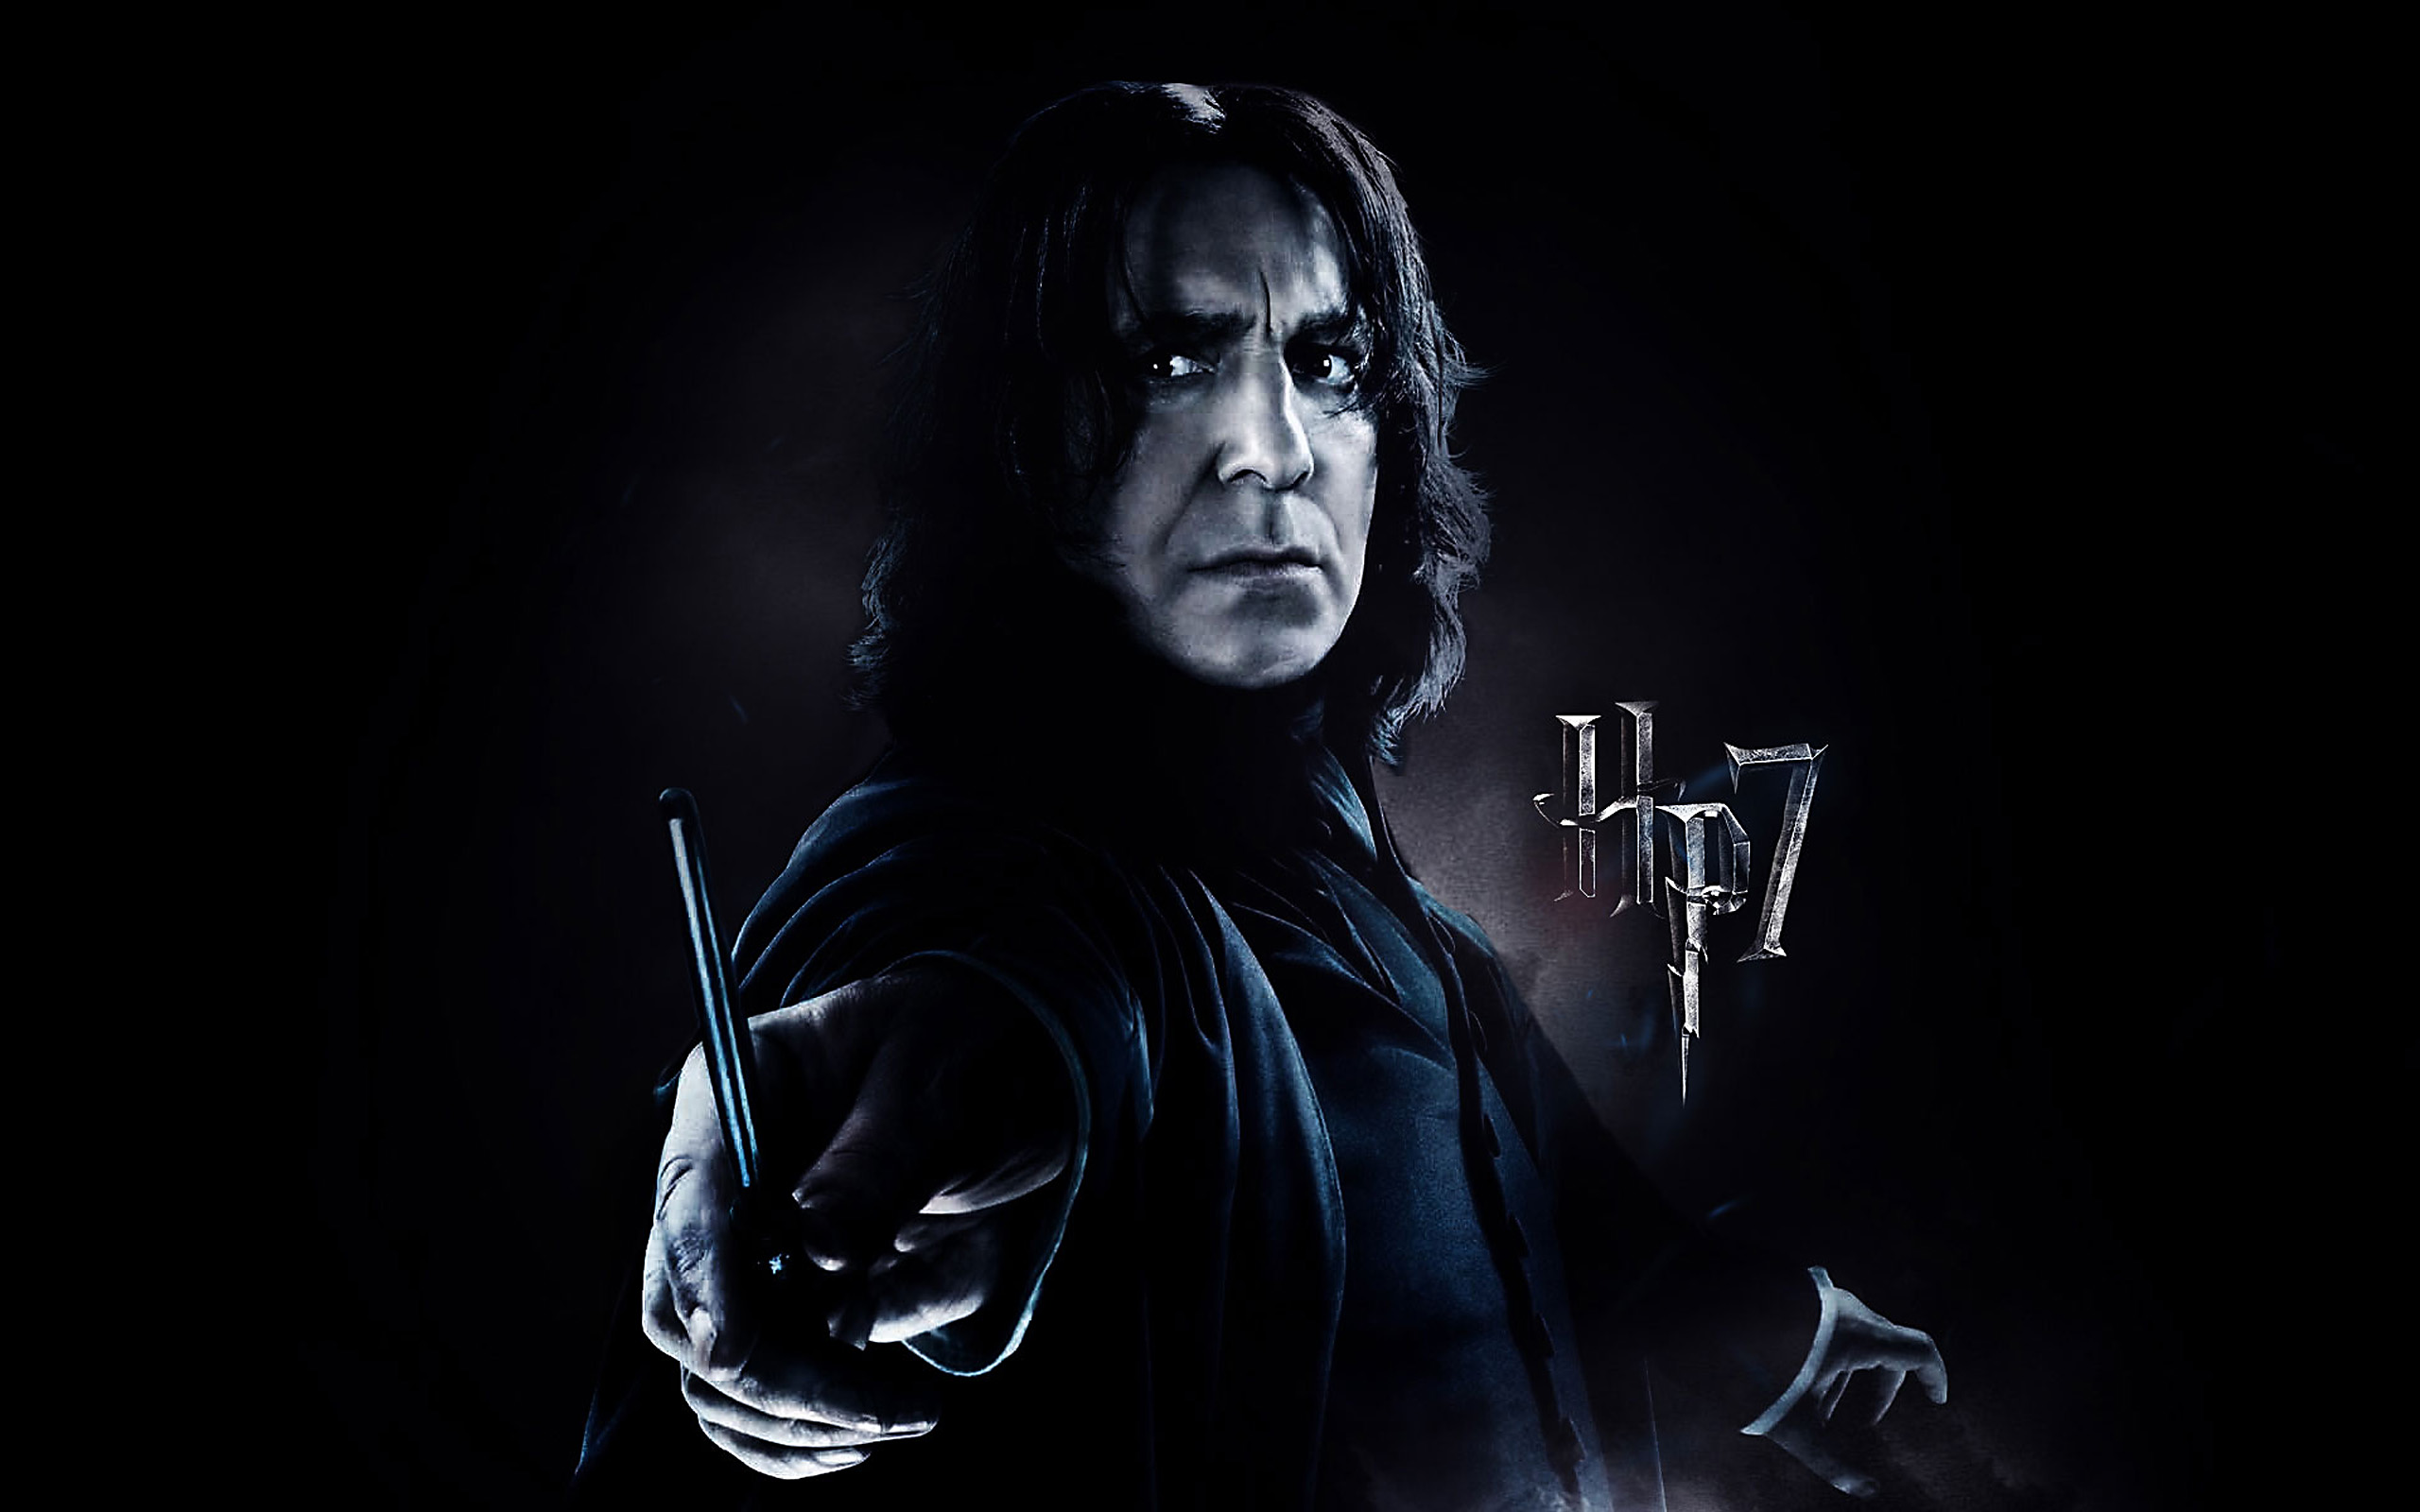 Harry Styles Wallpaper Iphone Harry Potter The Deathly Hallows Part 2 Widescreen